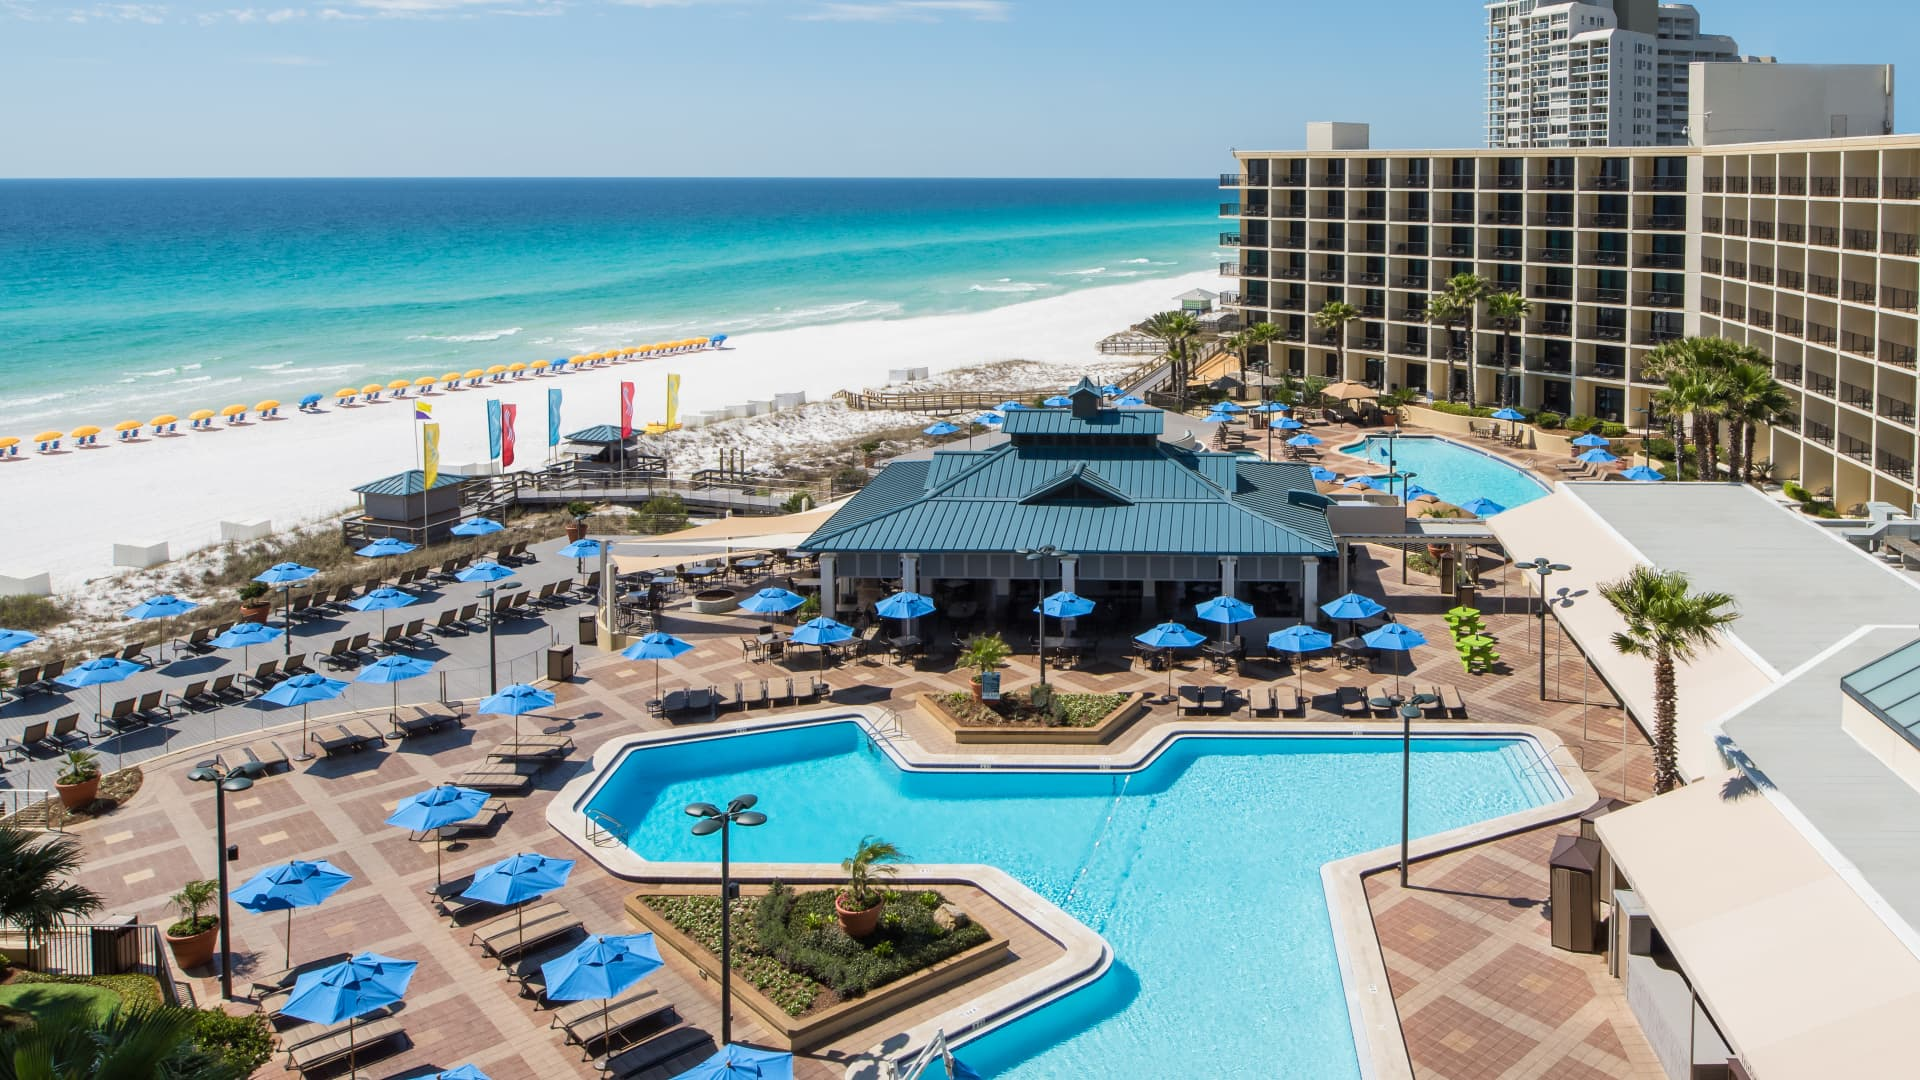 A month-long stay at Hilton Sandestin Beach Golf Resort & Spa, which starts at $90 a night, comes with breakfast, afternoon cocktails, beach rentals and laundry service.